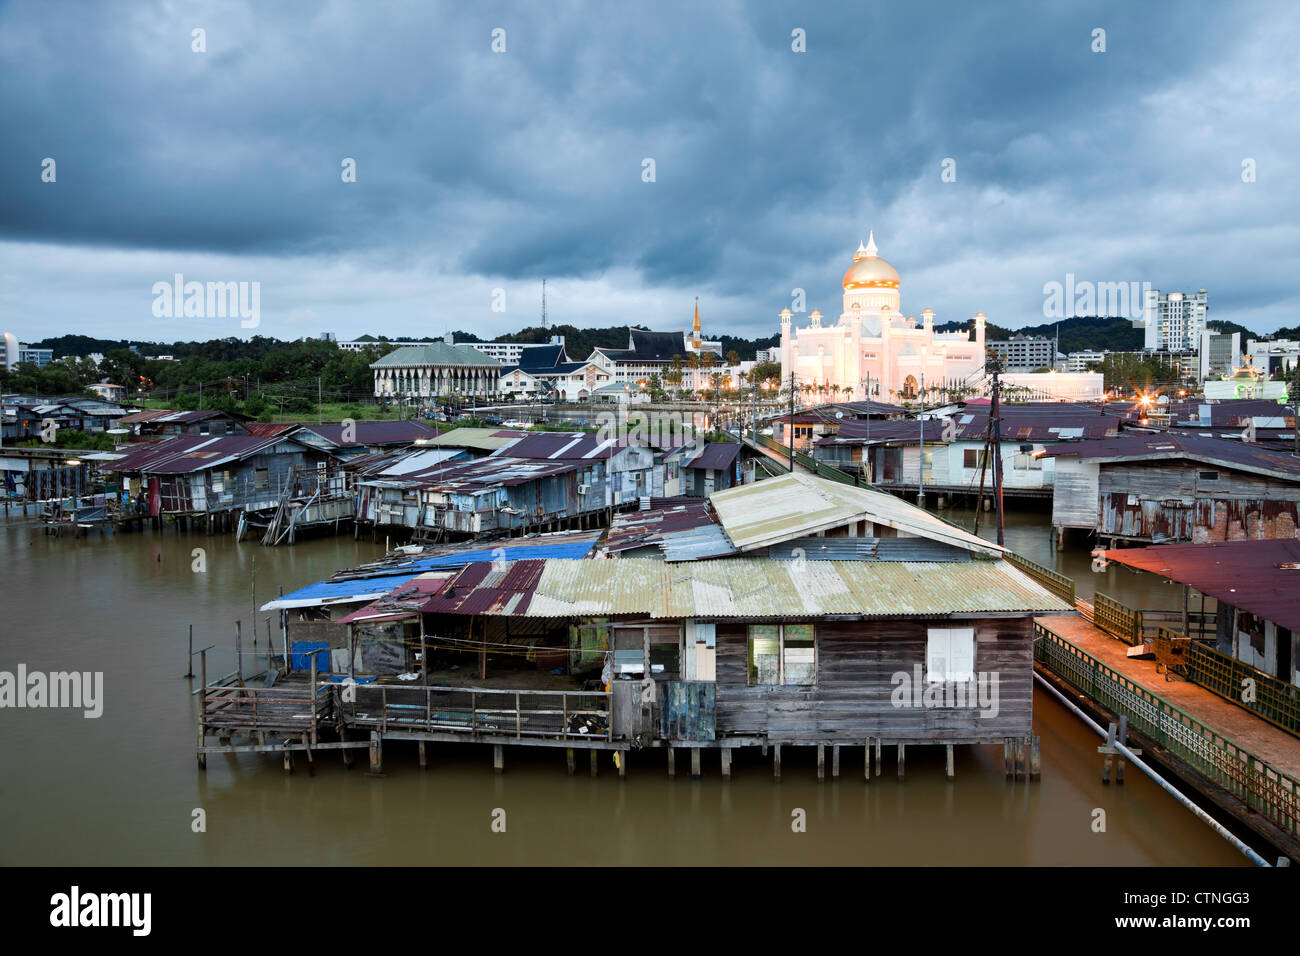 Water village and the Omar Ali Saifuddien Mosque in the evening Bandar Seri Begawan Brunei Borneo Asia. - Stock Image